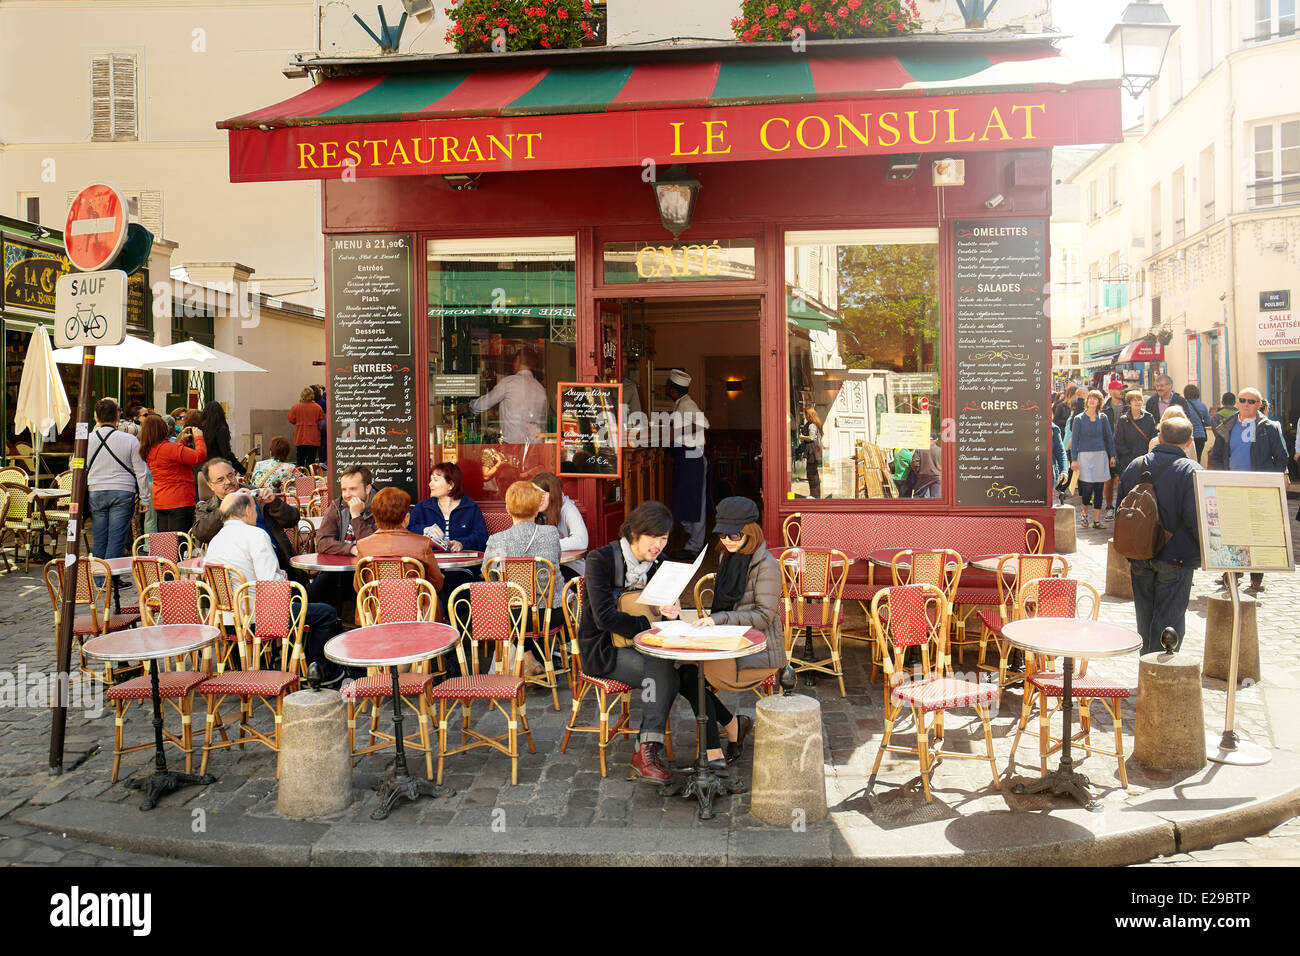 Bar Restaurant in Montmartre District, Paris, France - Stock Image